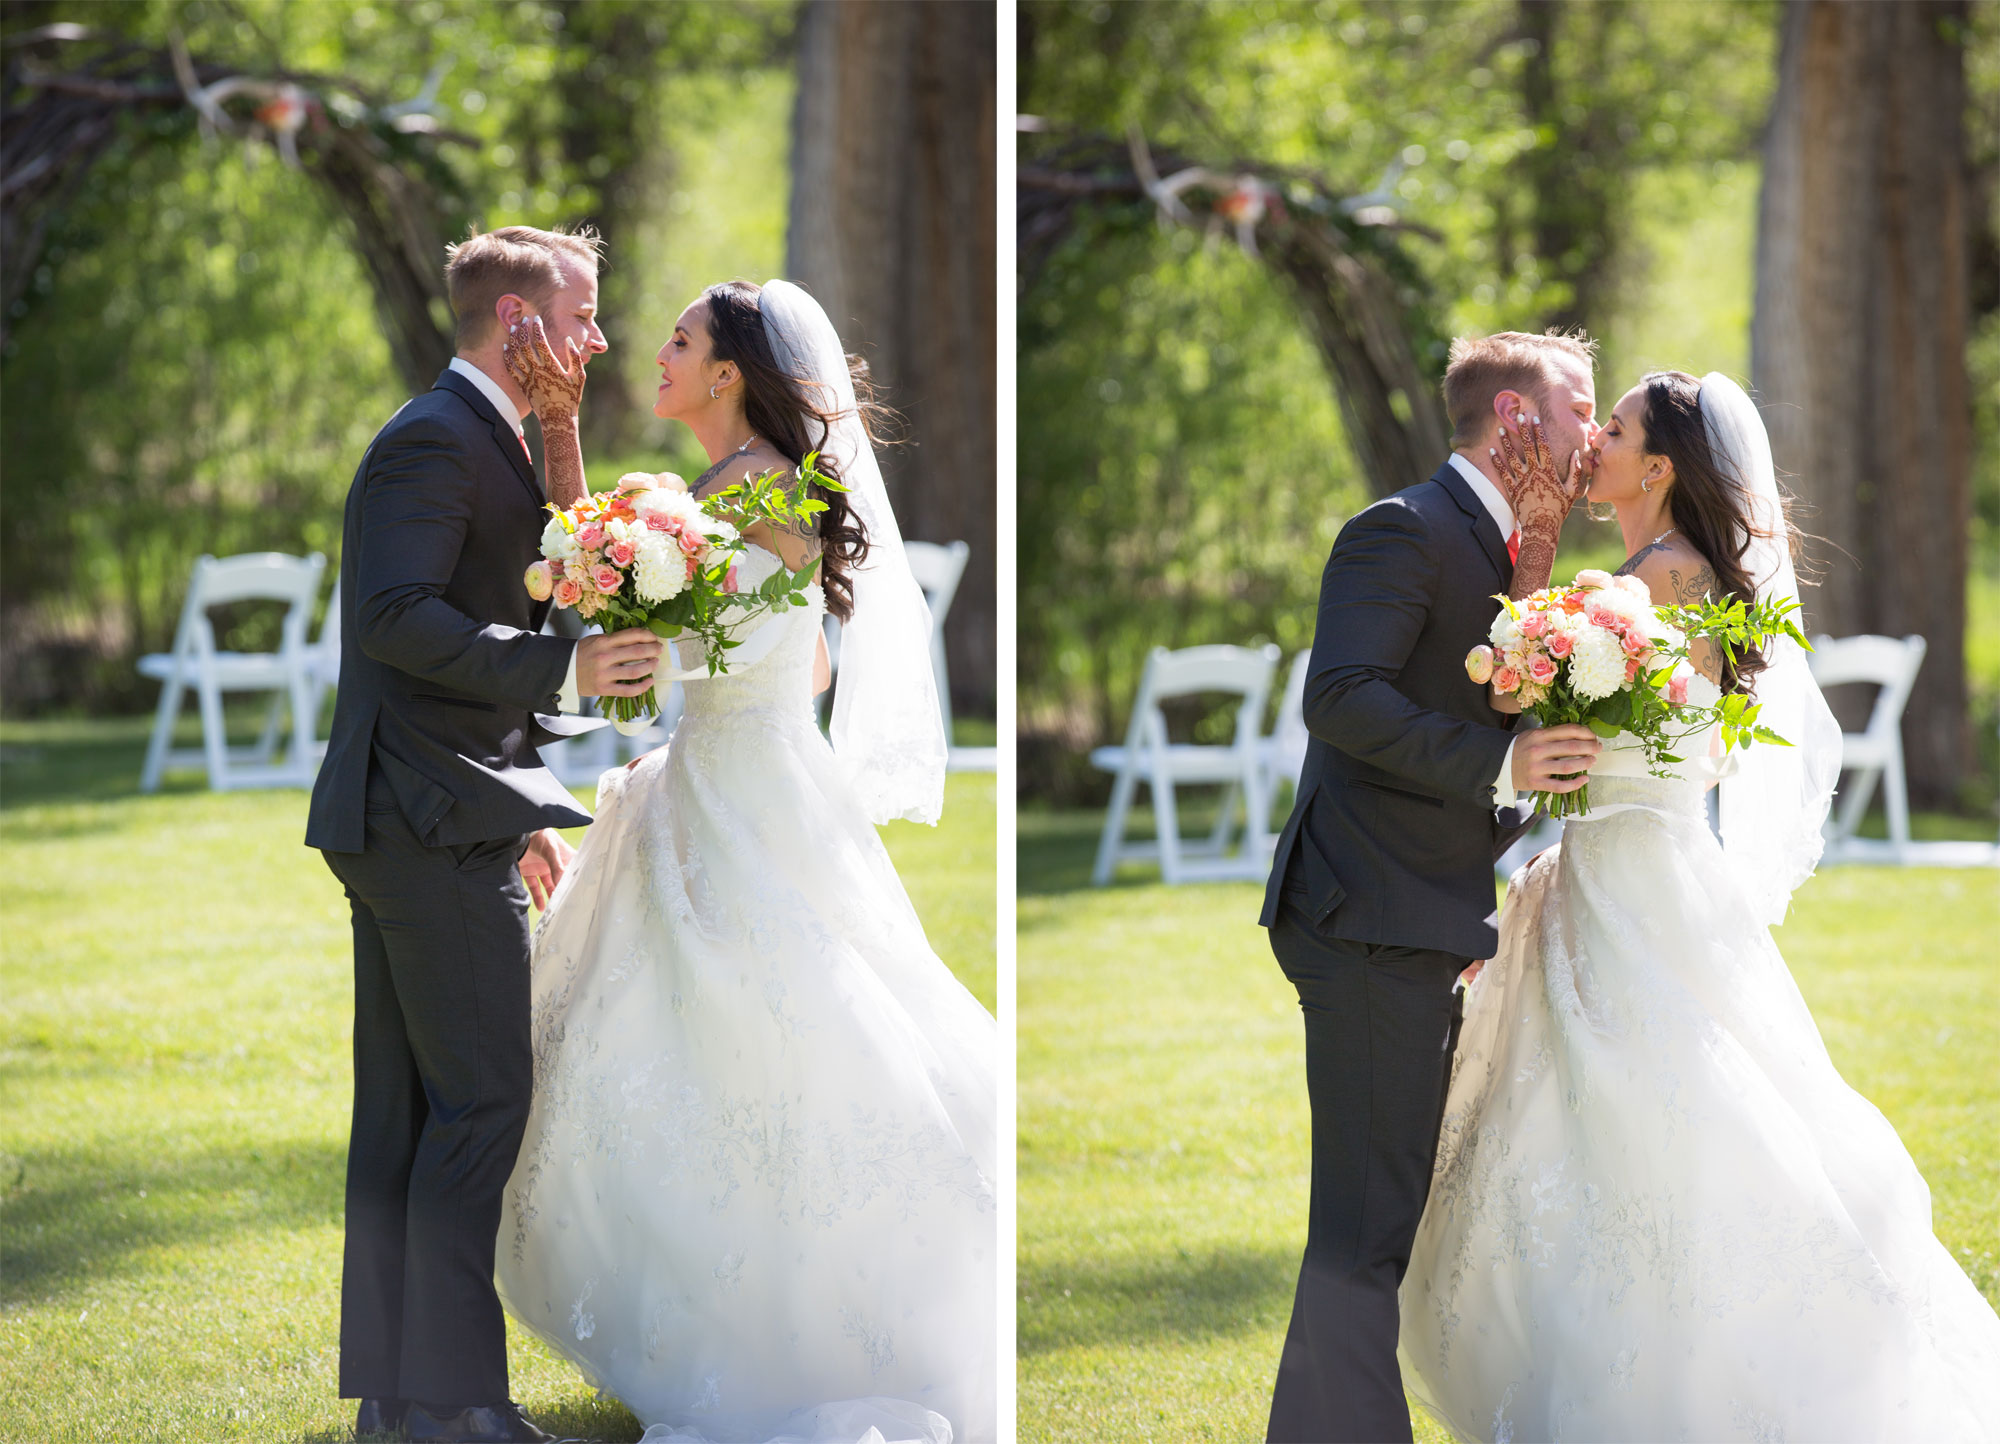 An intimate destination wedding at Antlers on the Creek B&B, Durango Colorado